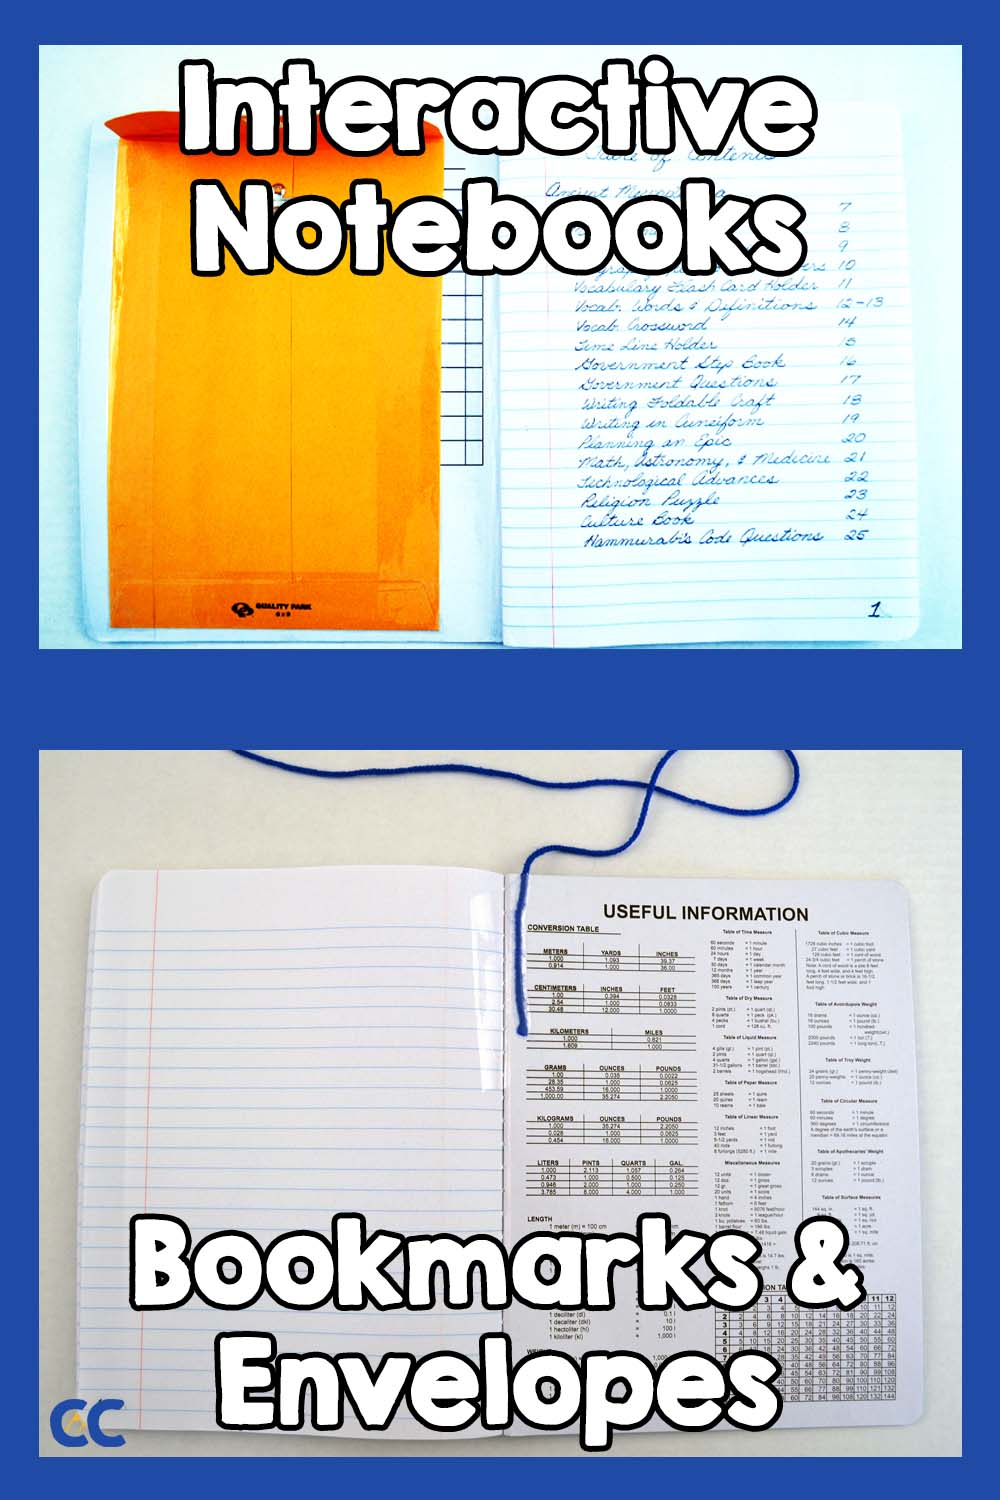 Two interactive notebooks open to different pages to show off the envelope at the front and the bookmark at the back.